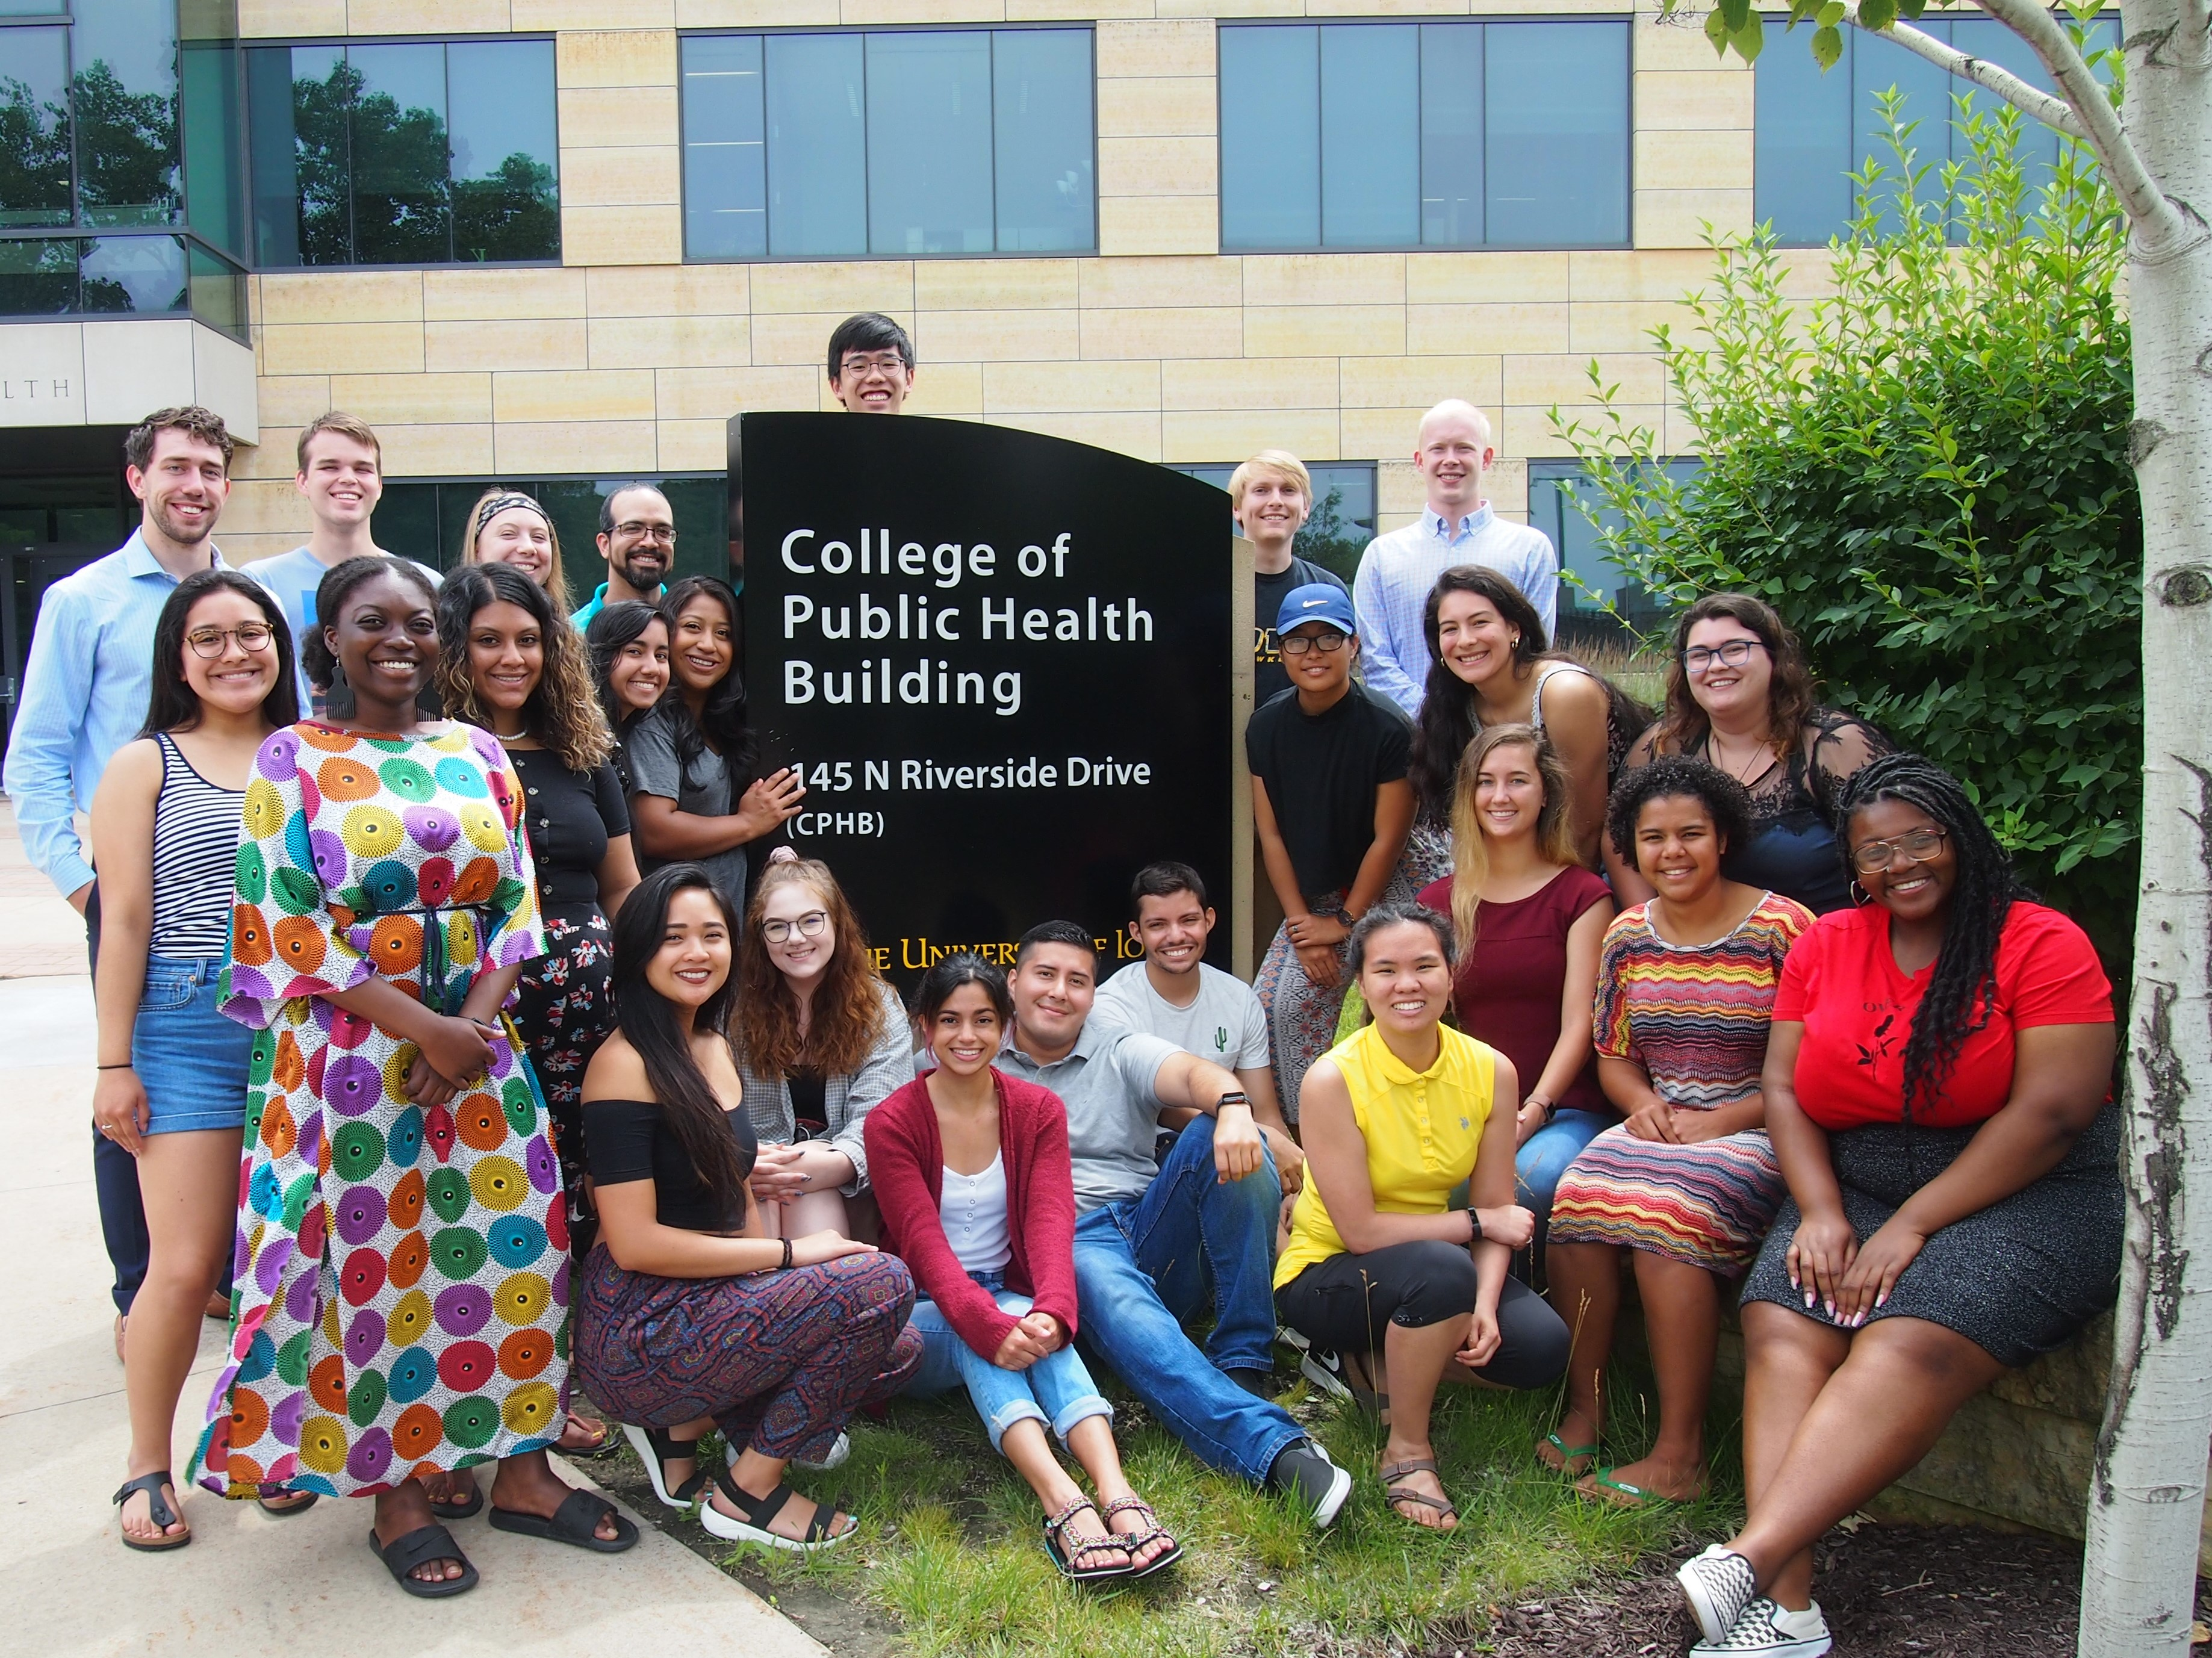 ISIB students pose in front of the College of Public Health Building